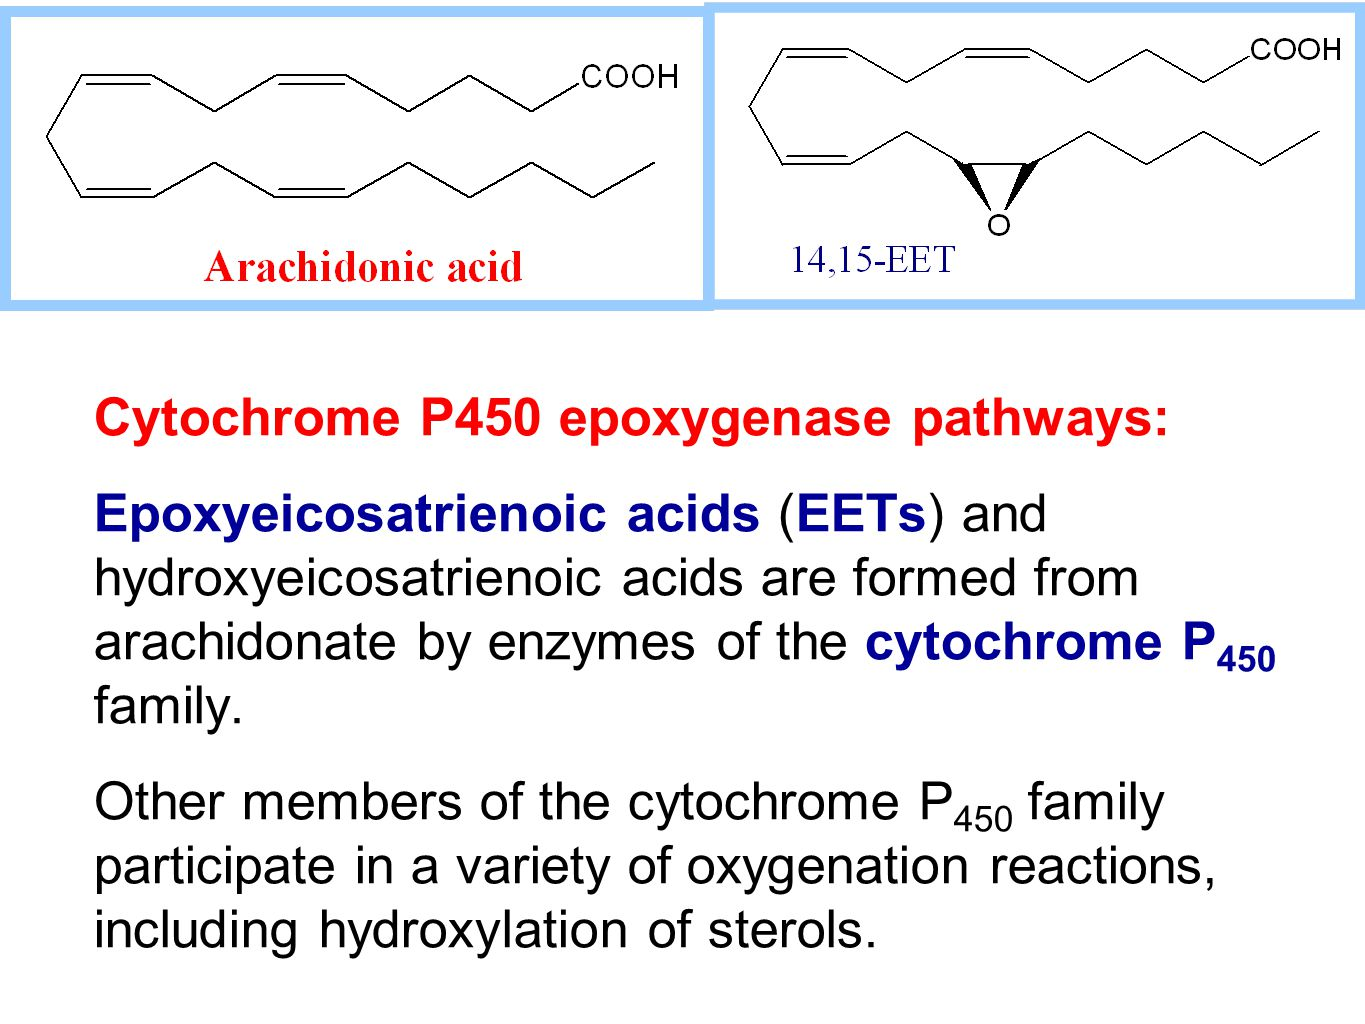 Cytochrome P450 epoxygenase pathways: Epoxyeicosatrienoic acids (EETs) and hydroxyeicosatrienoic acids are formed from arachidonate by enzymes of the cytochrome P 450 family.